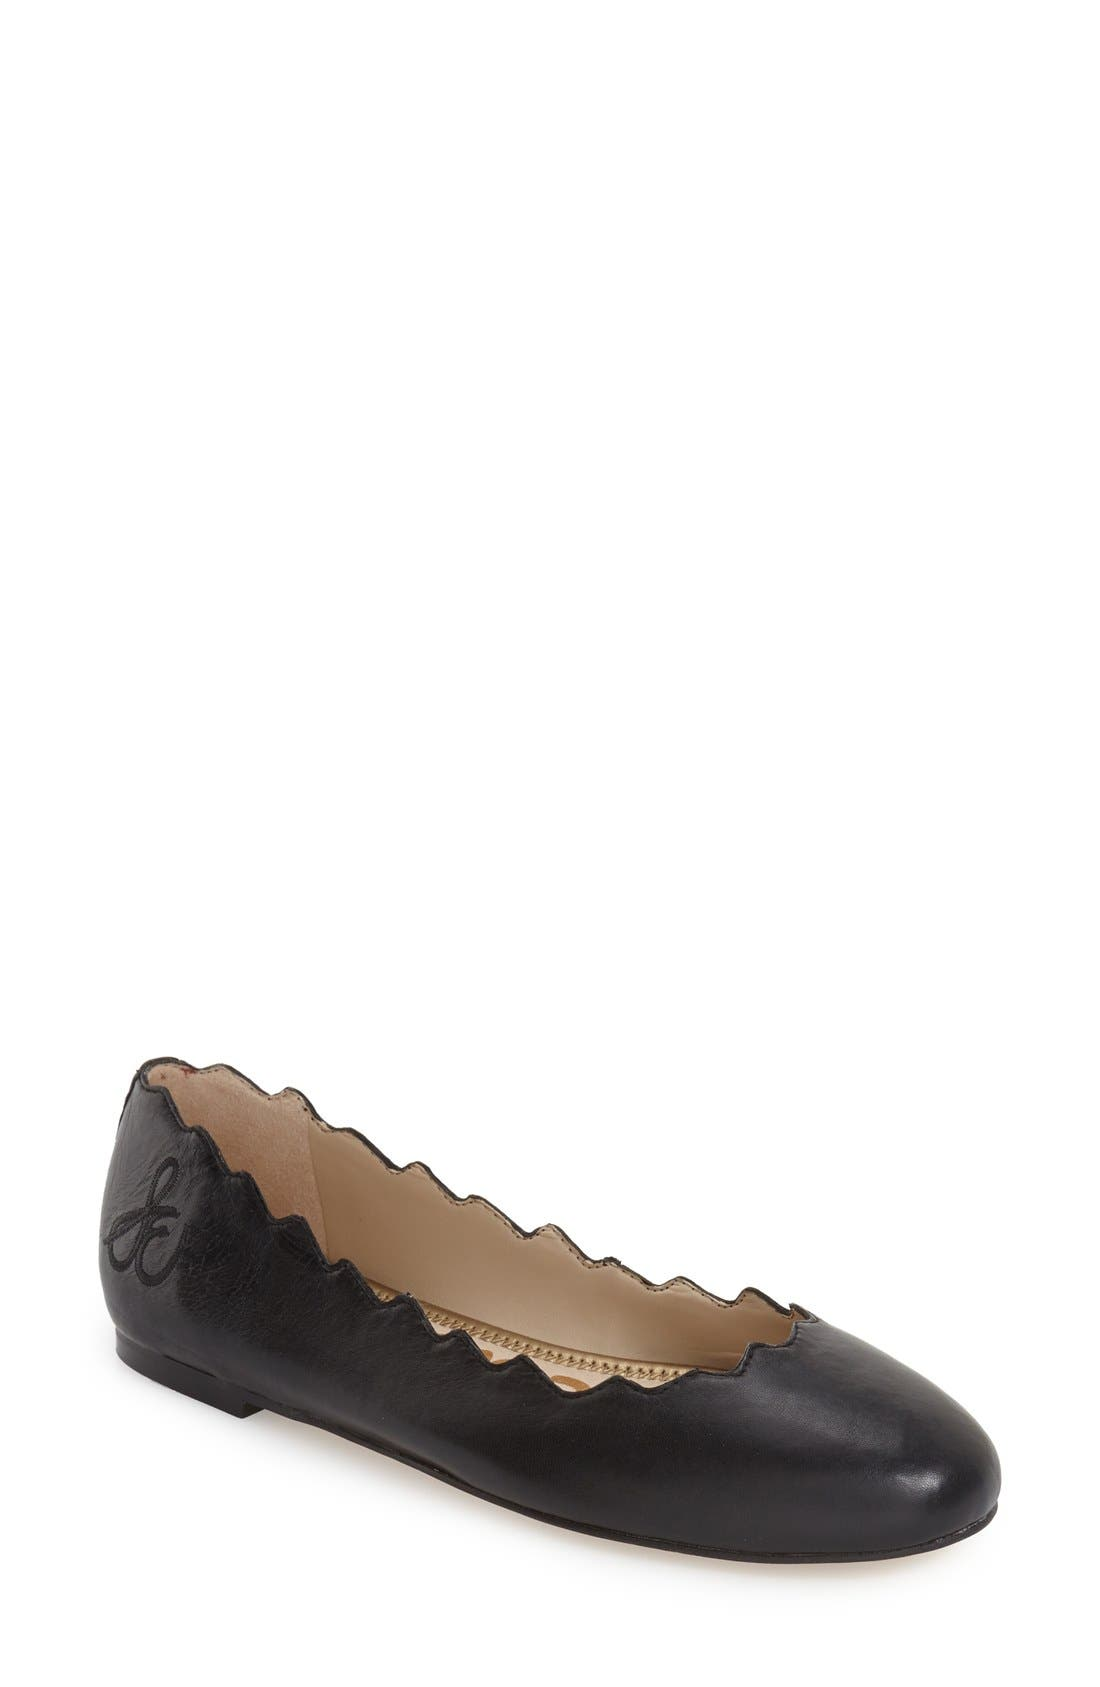 Alternate Image 1 Selected - Sam Edelman 'Francis' Flat (Women)